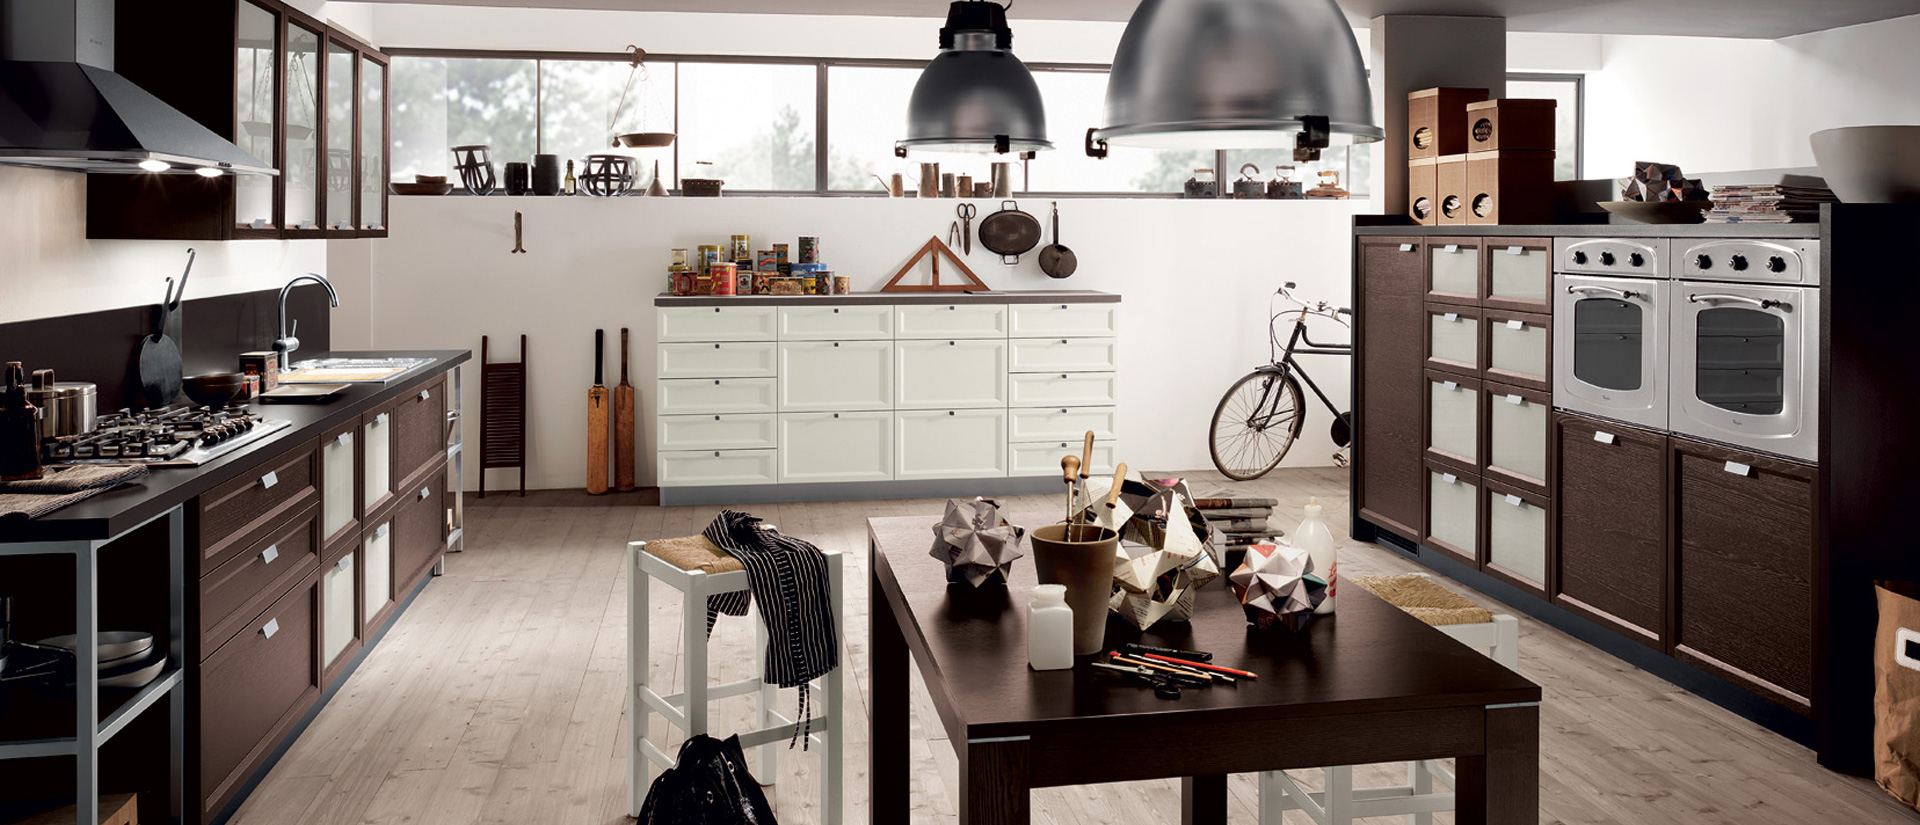 Atelier casadesign for Arredo cucina design